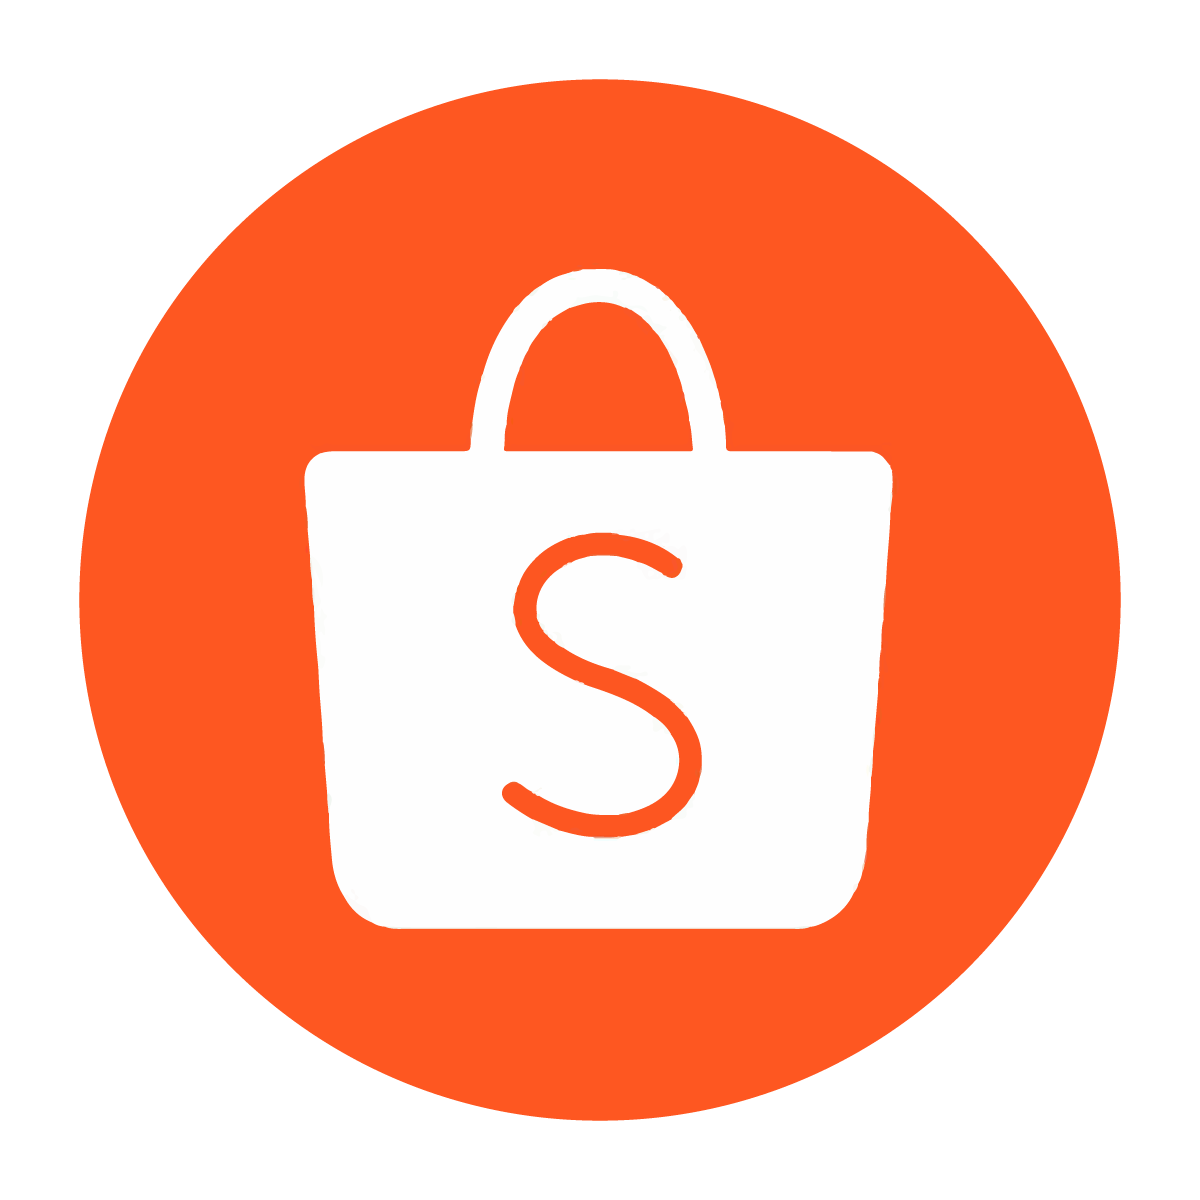 shopee png free shopee png transparent images 96779 pngio shopee png transparent